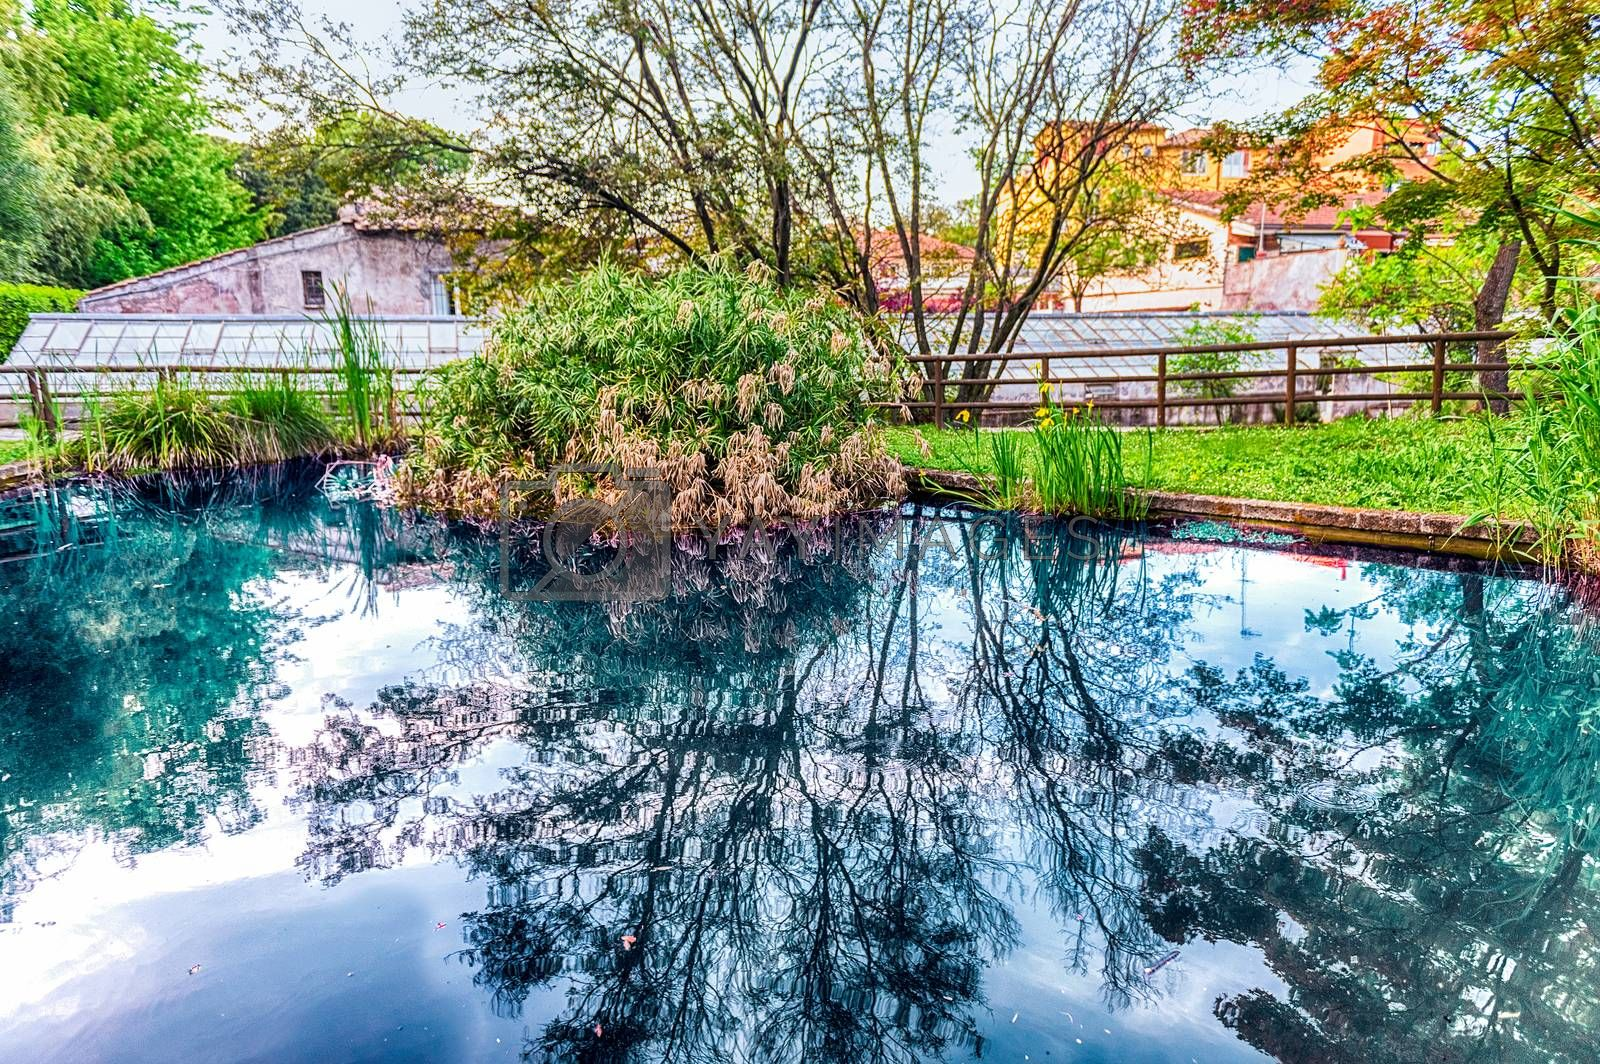 Idillic pond with beautiful reflections inside a public park in Rome, Italy